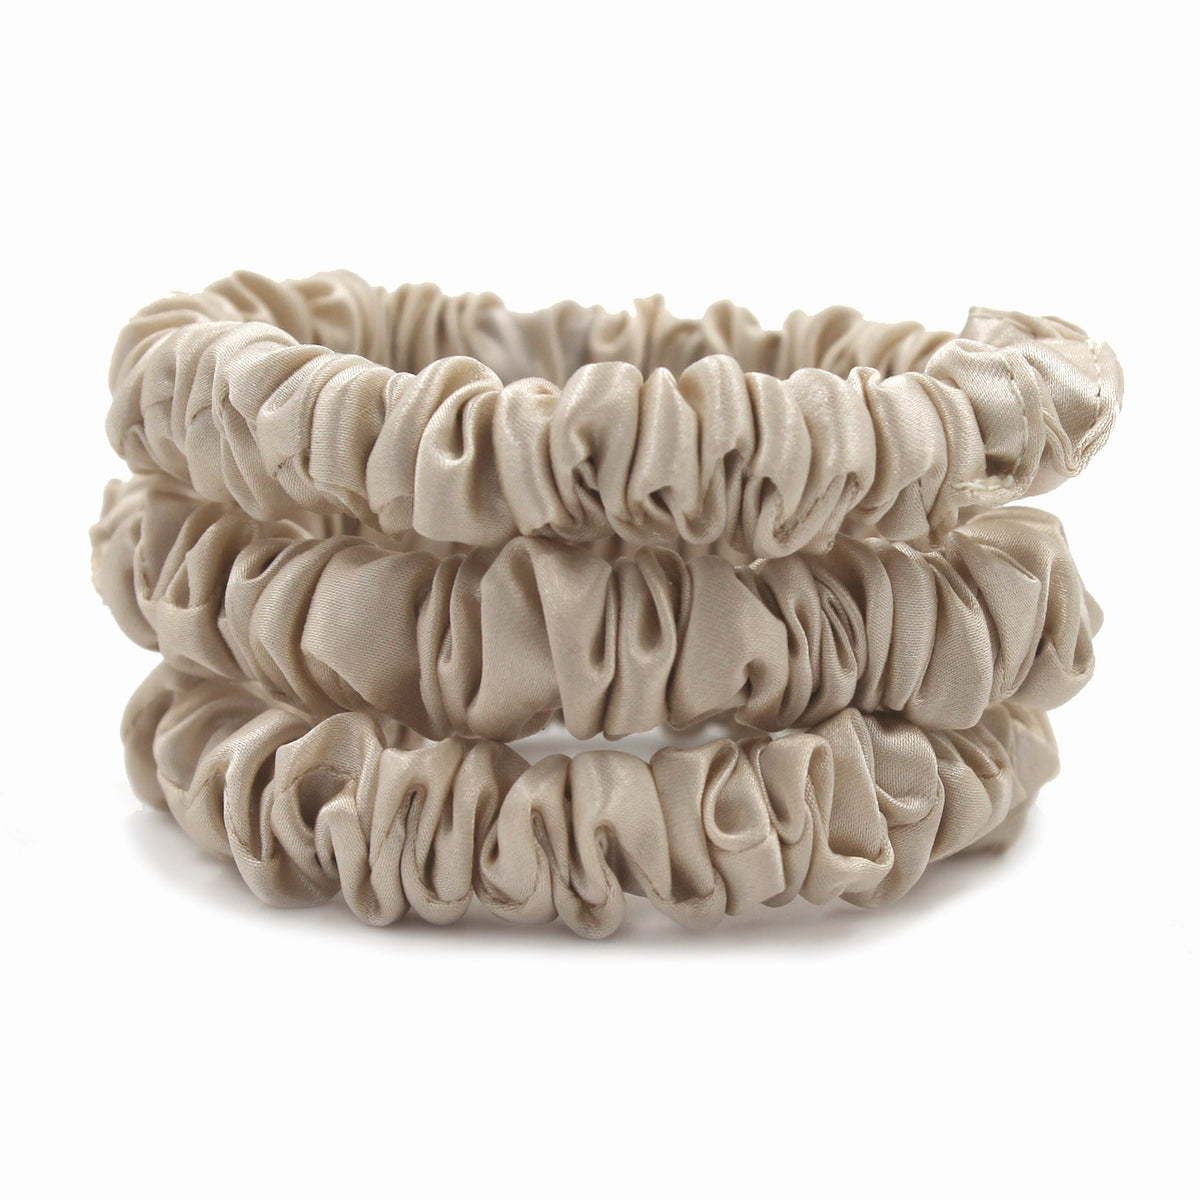 Silk Hair Scrunchies- Desert Sand